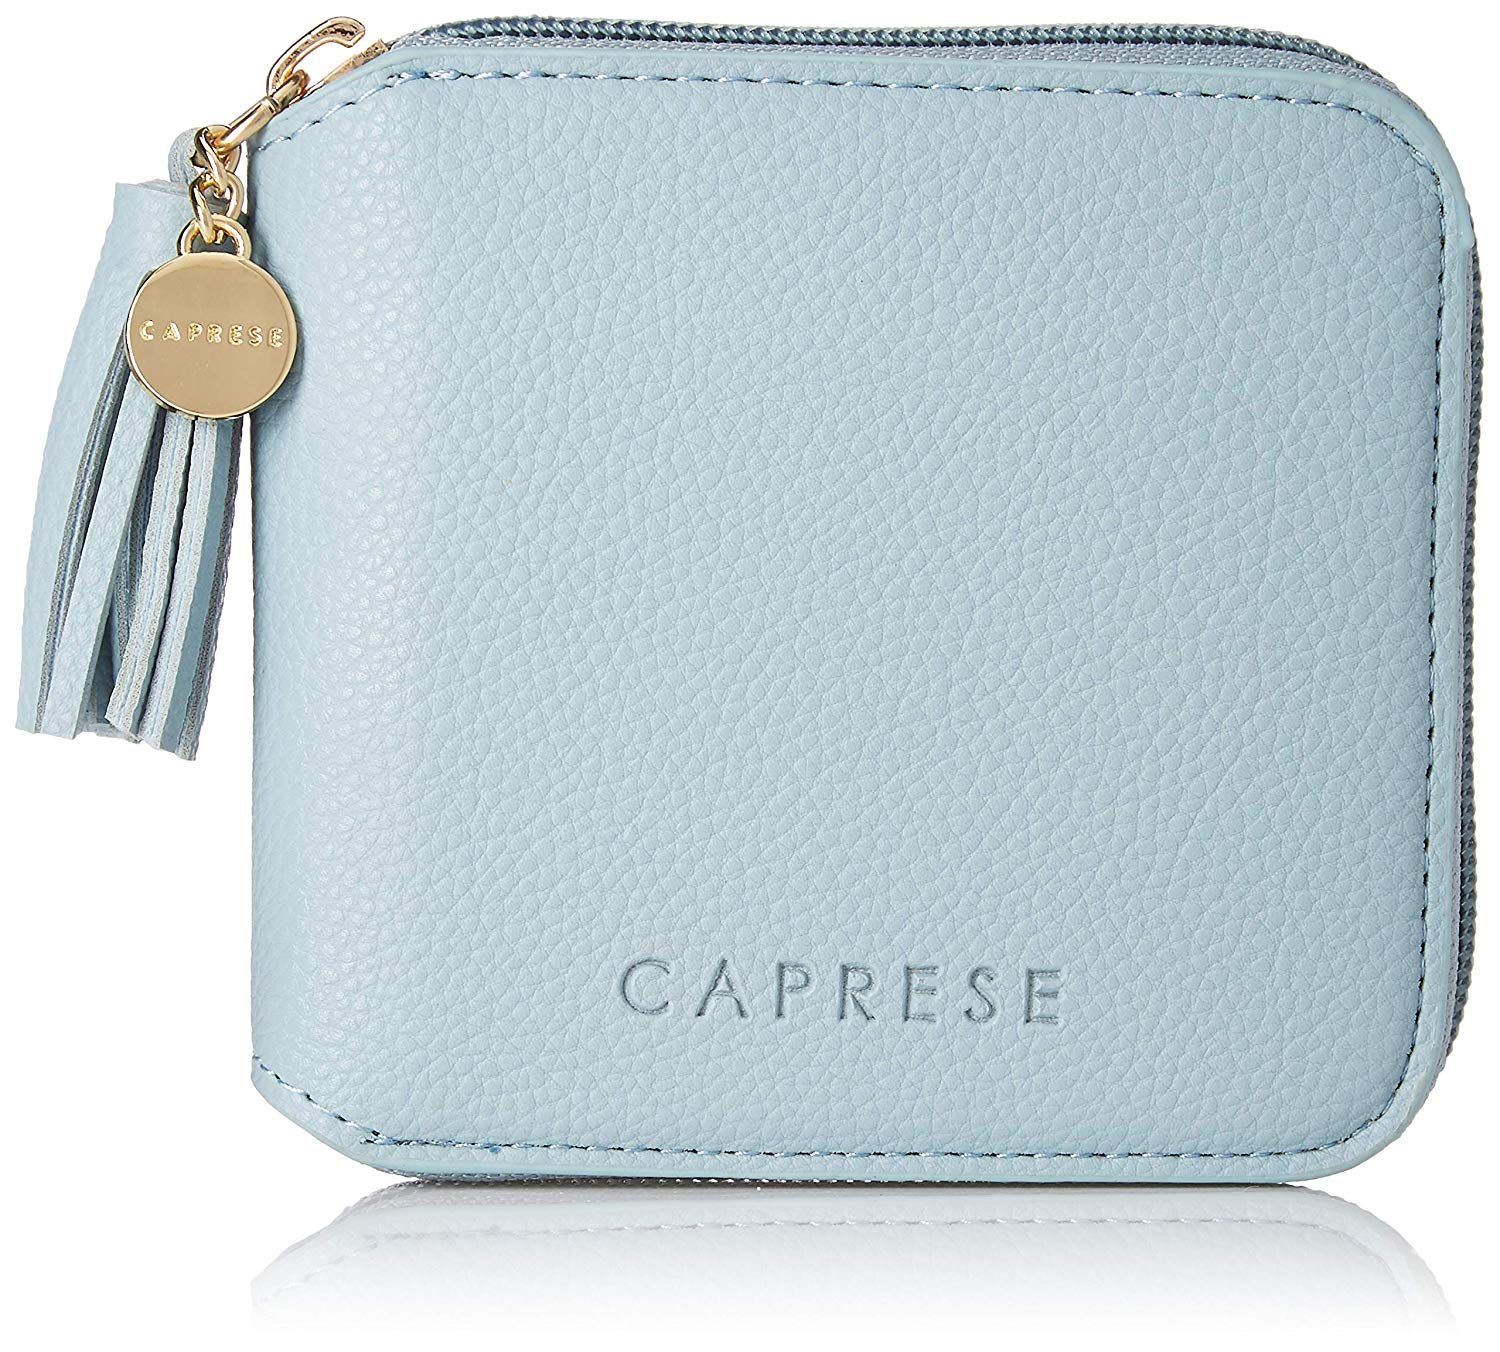 b6550fc2120 shopnow#Caprese Pepa Women's Wallet (Aqua): Amazon.in: Shoes ...